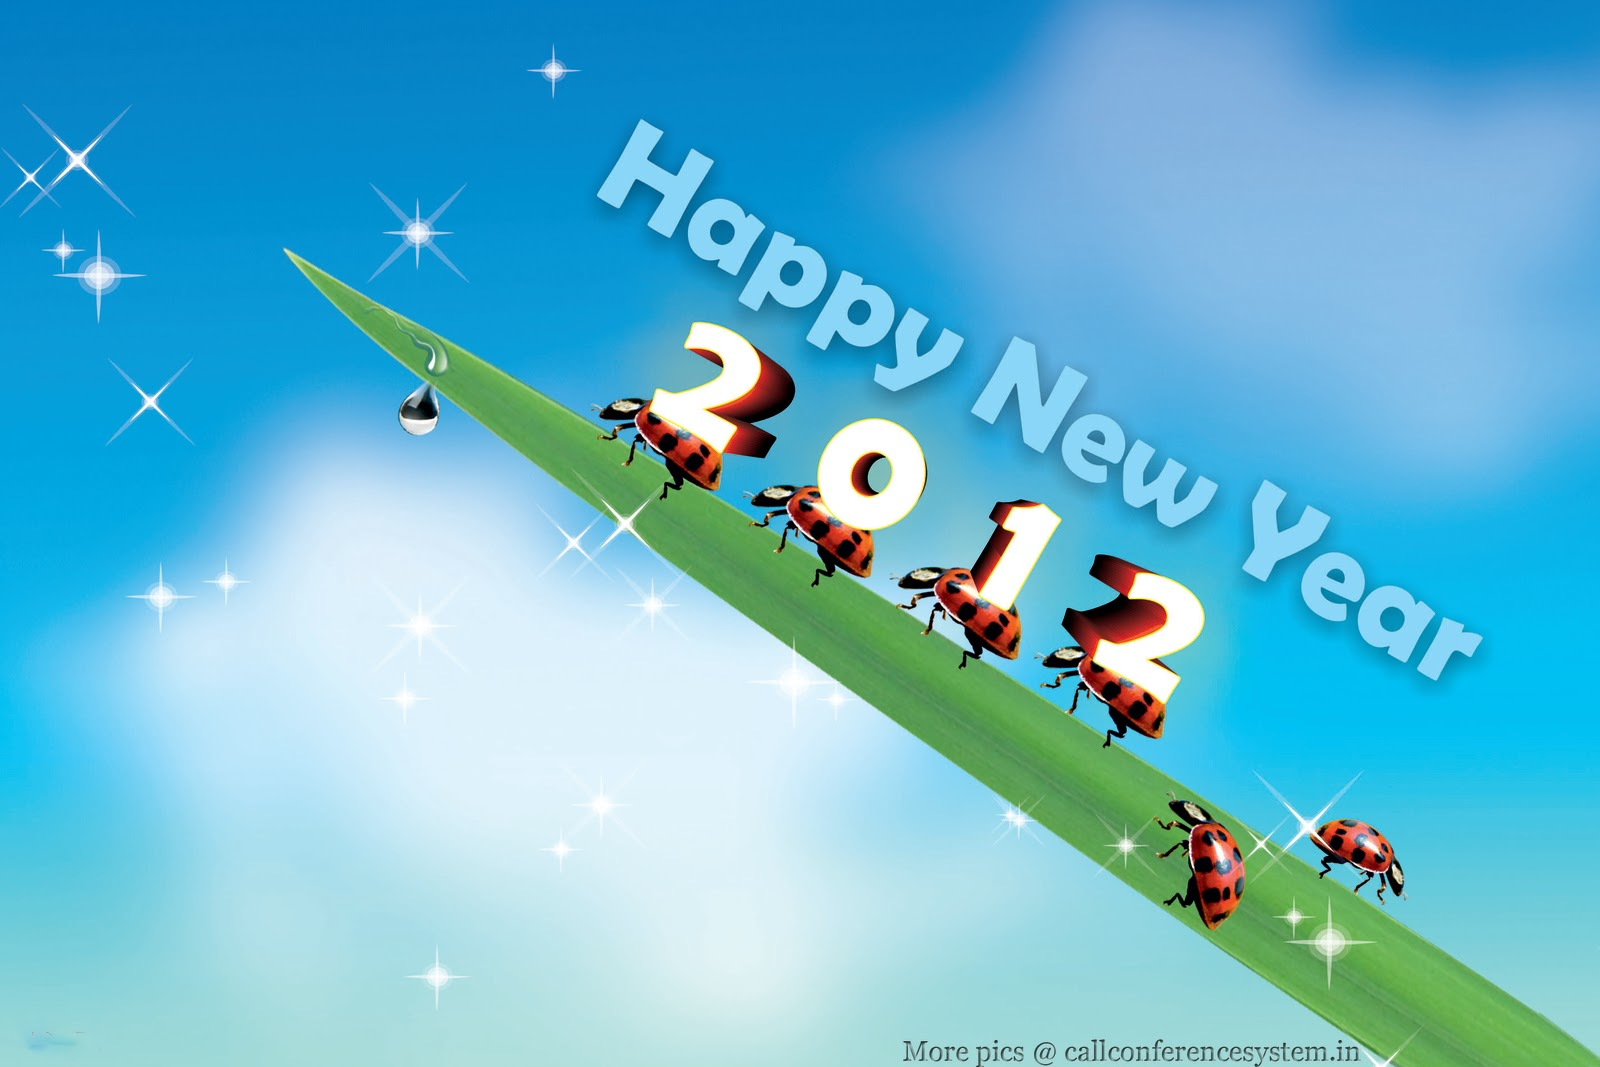 http://1.bp.blogspot.com/-BkEroewgJFE/ToP7-gvGCHI/AAAAAAAAAuU/Yt1VFRXz6Z0/s1600/Happy-New-Year-2012-Walking-Numbers.jpg